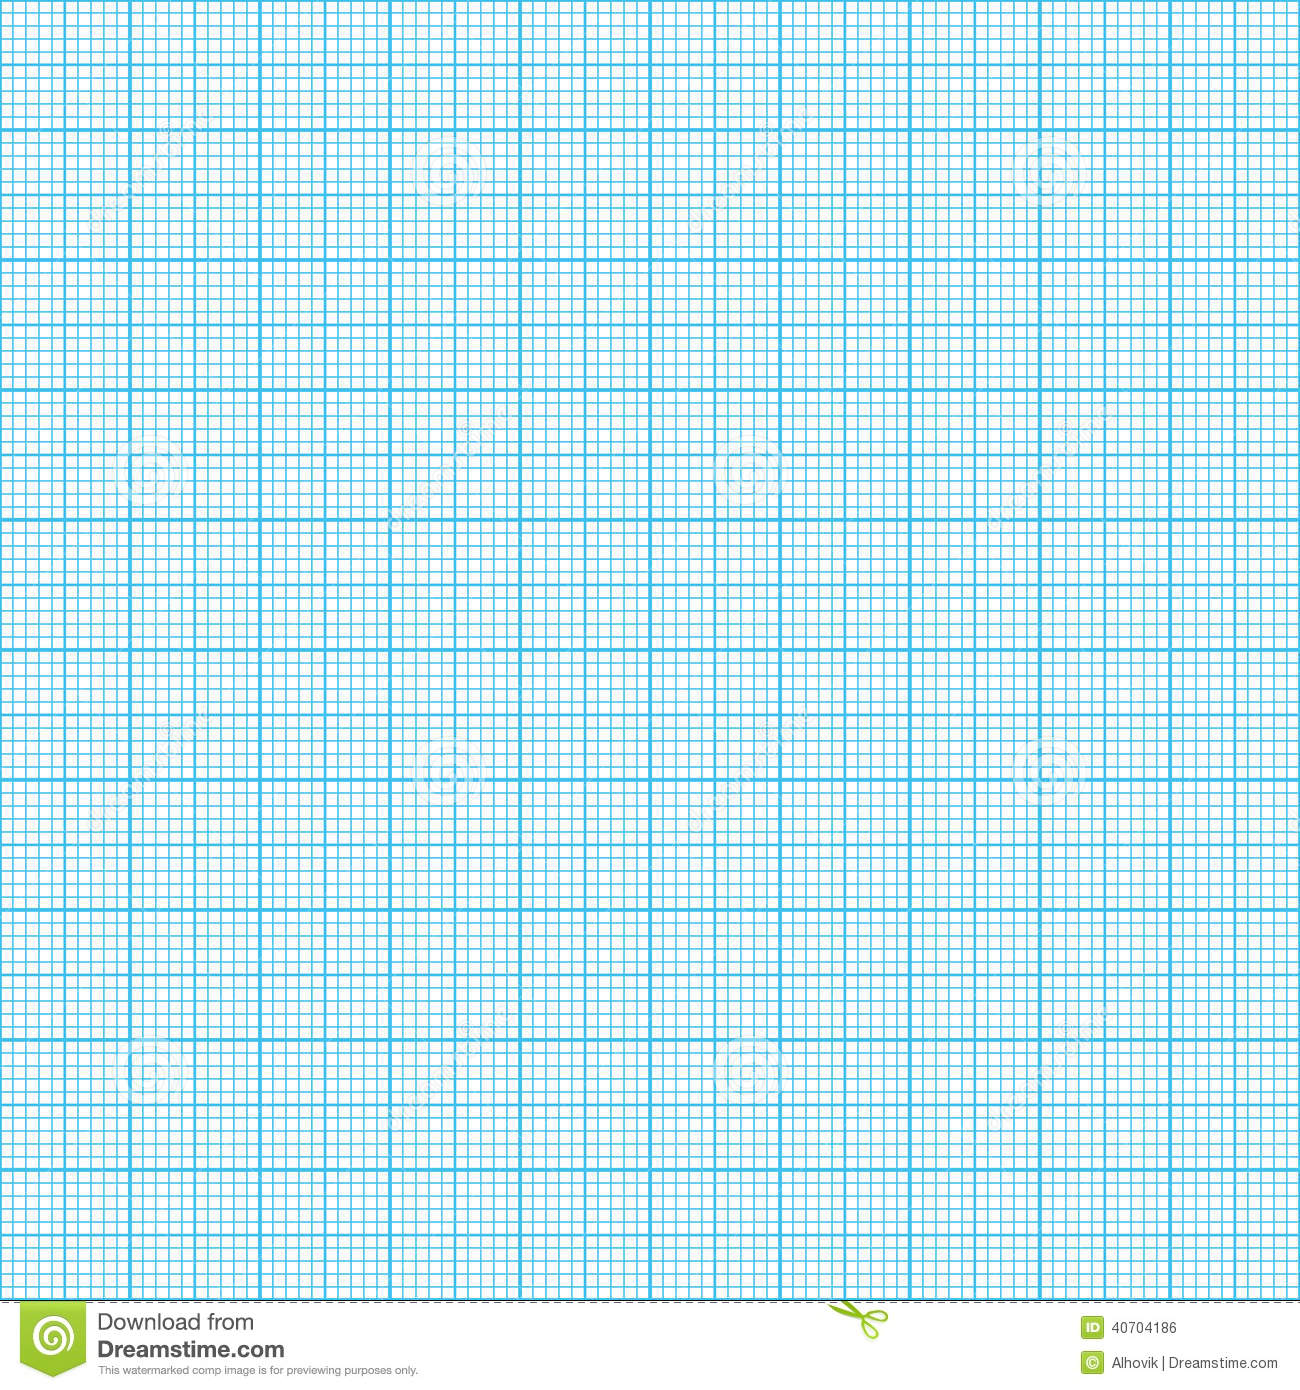 graph millimeter paper seamless vector real scale 40704186